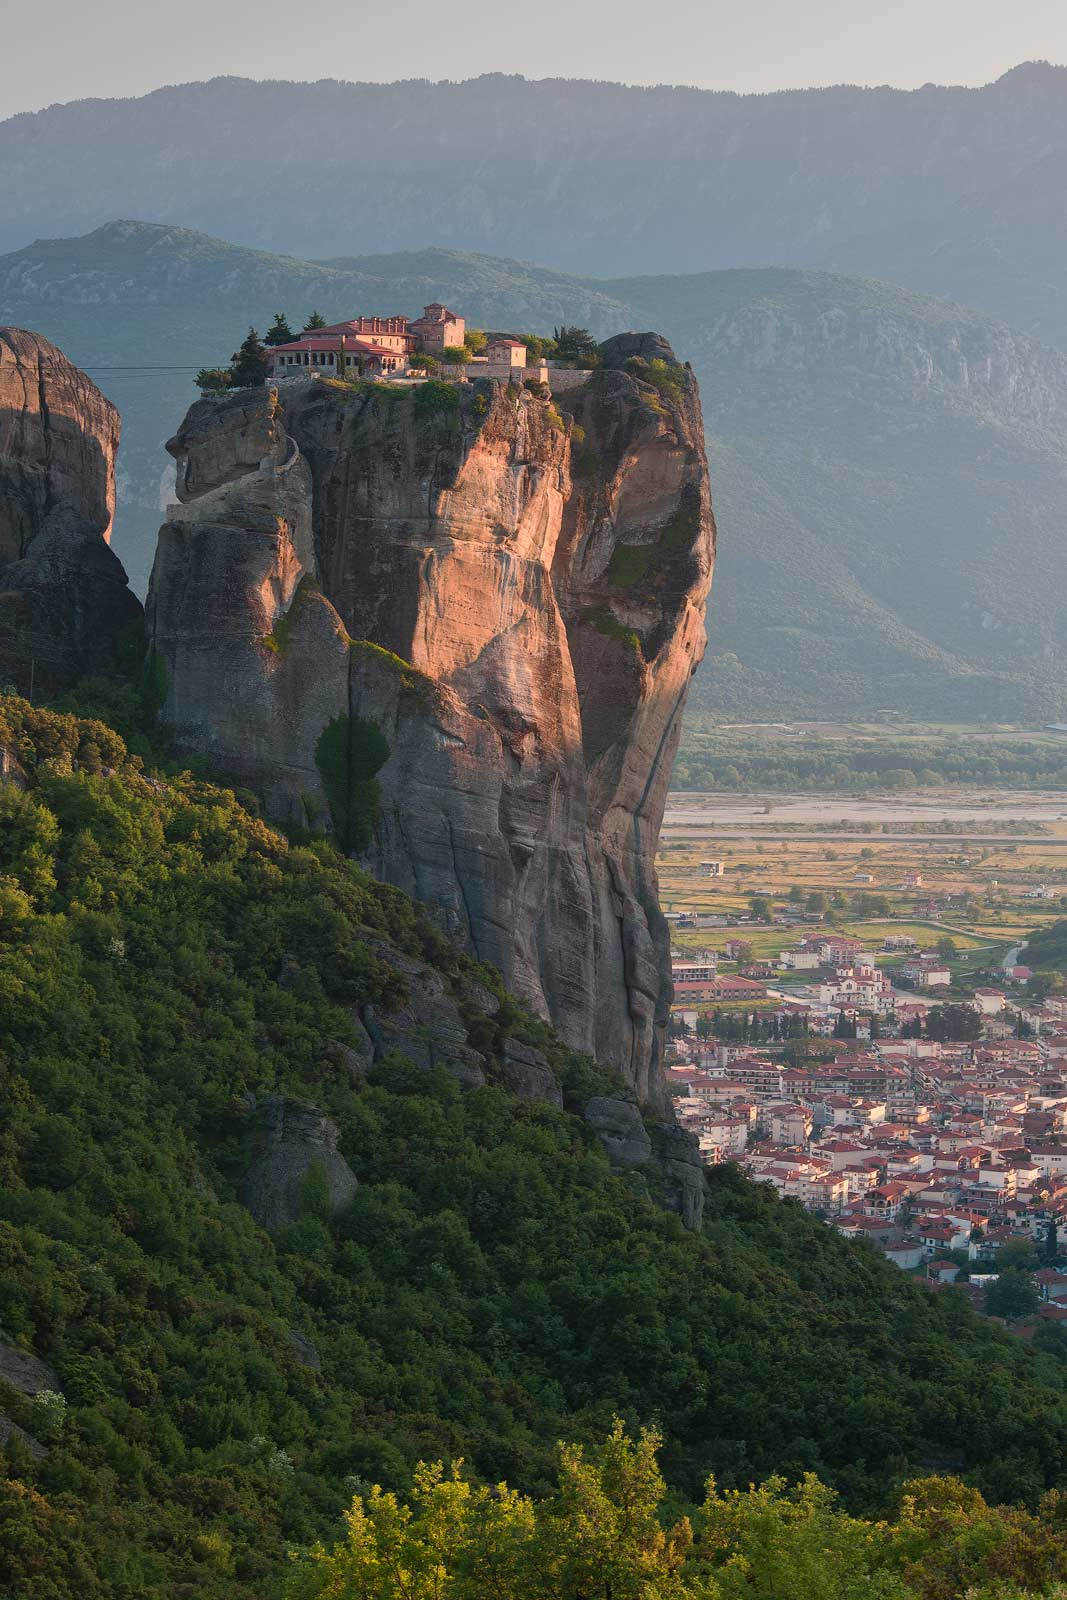 Holy Trinity Monastery (Agia Trias) in the Meteora with the town of Kalambaka on Thessaly valley floor. Greece. - Meteora-Monasteries-Greece - Mike Reyfman Photography